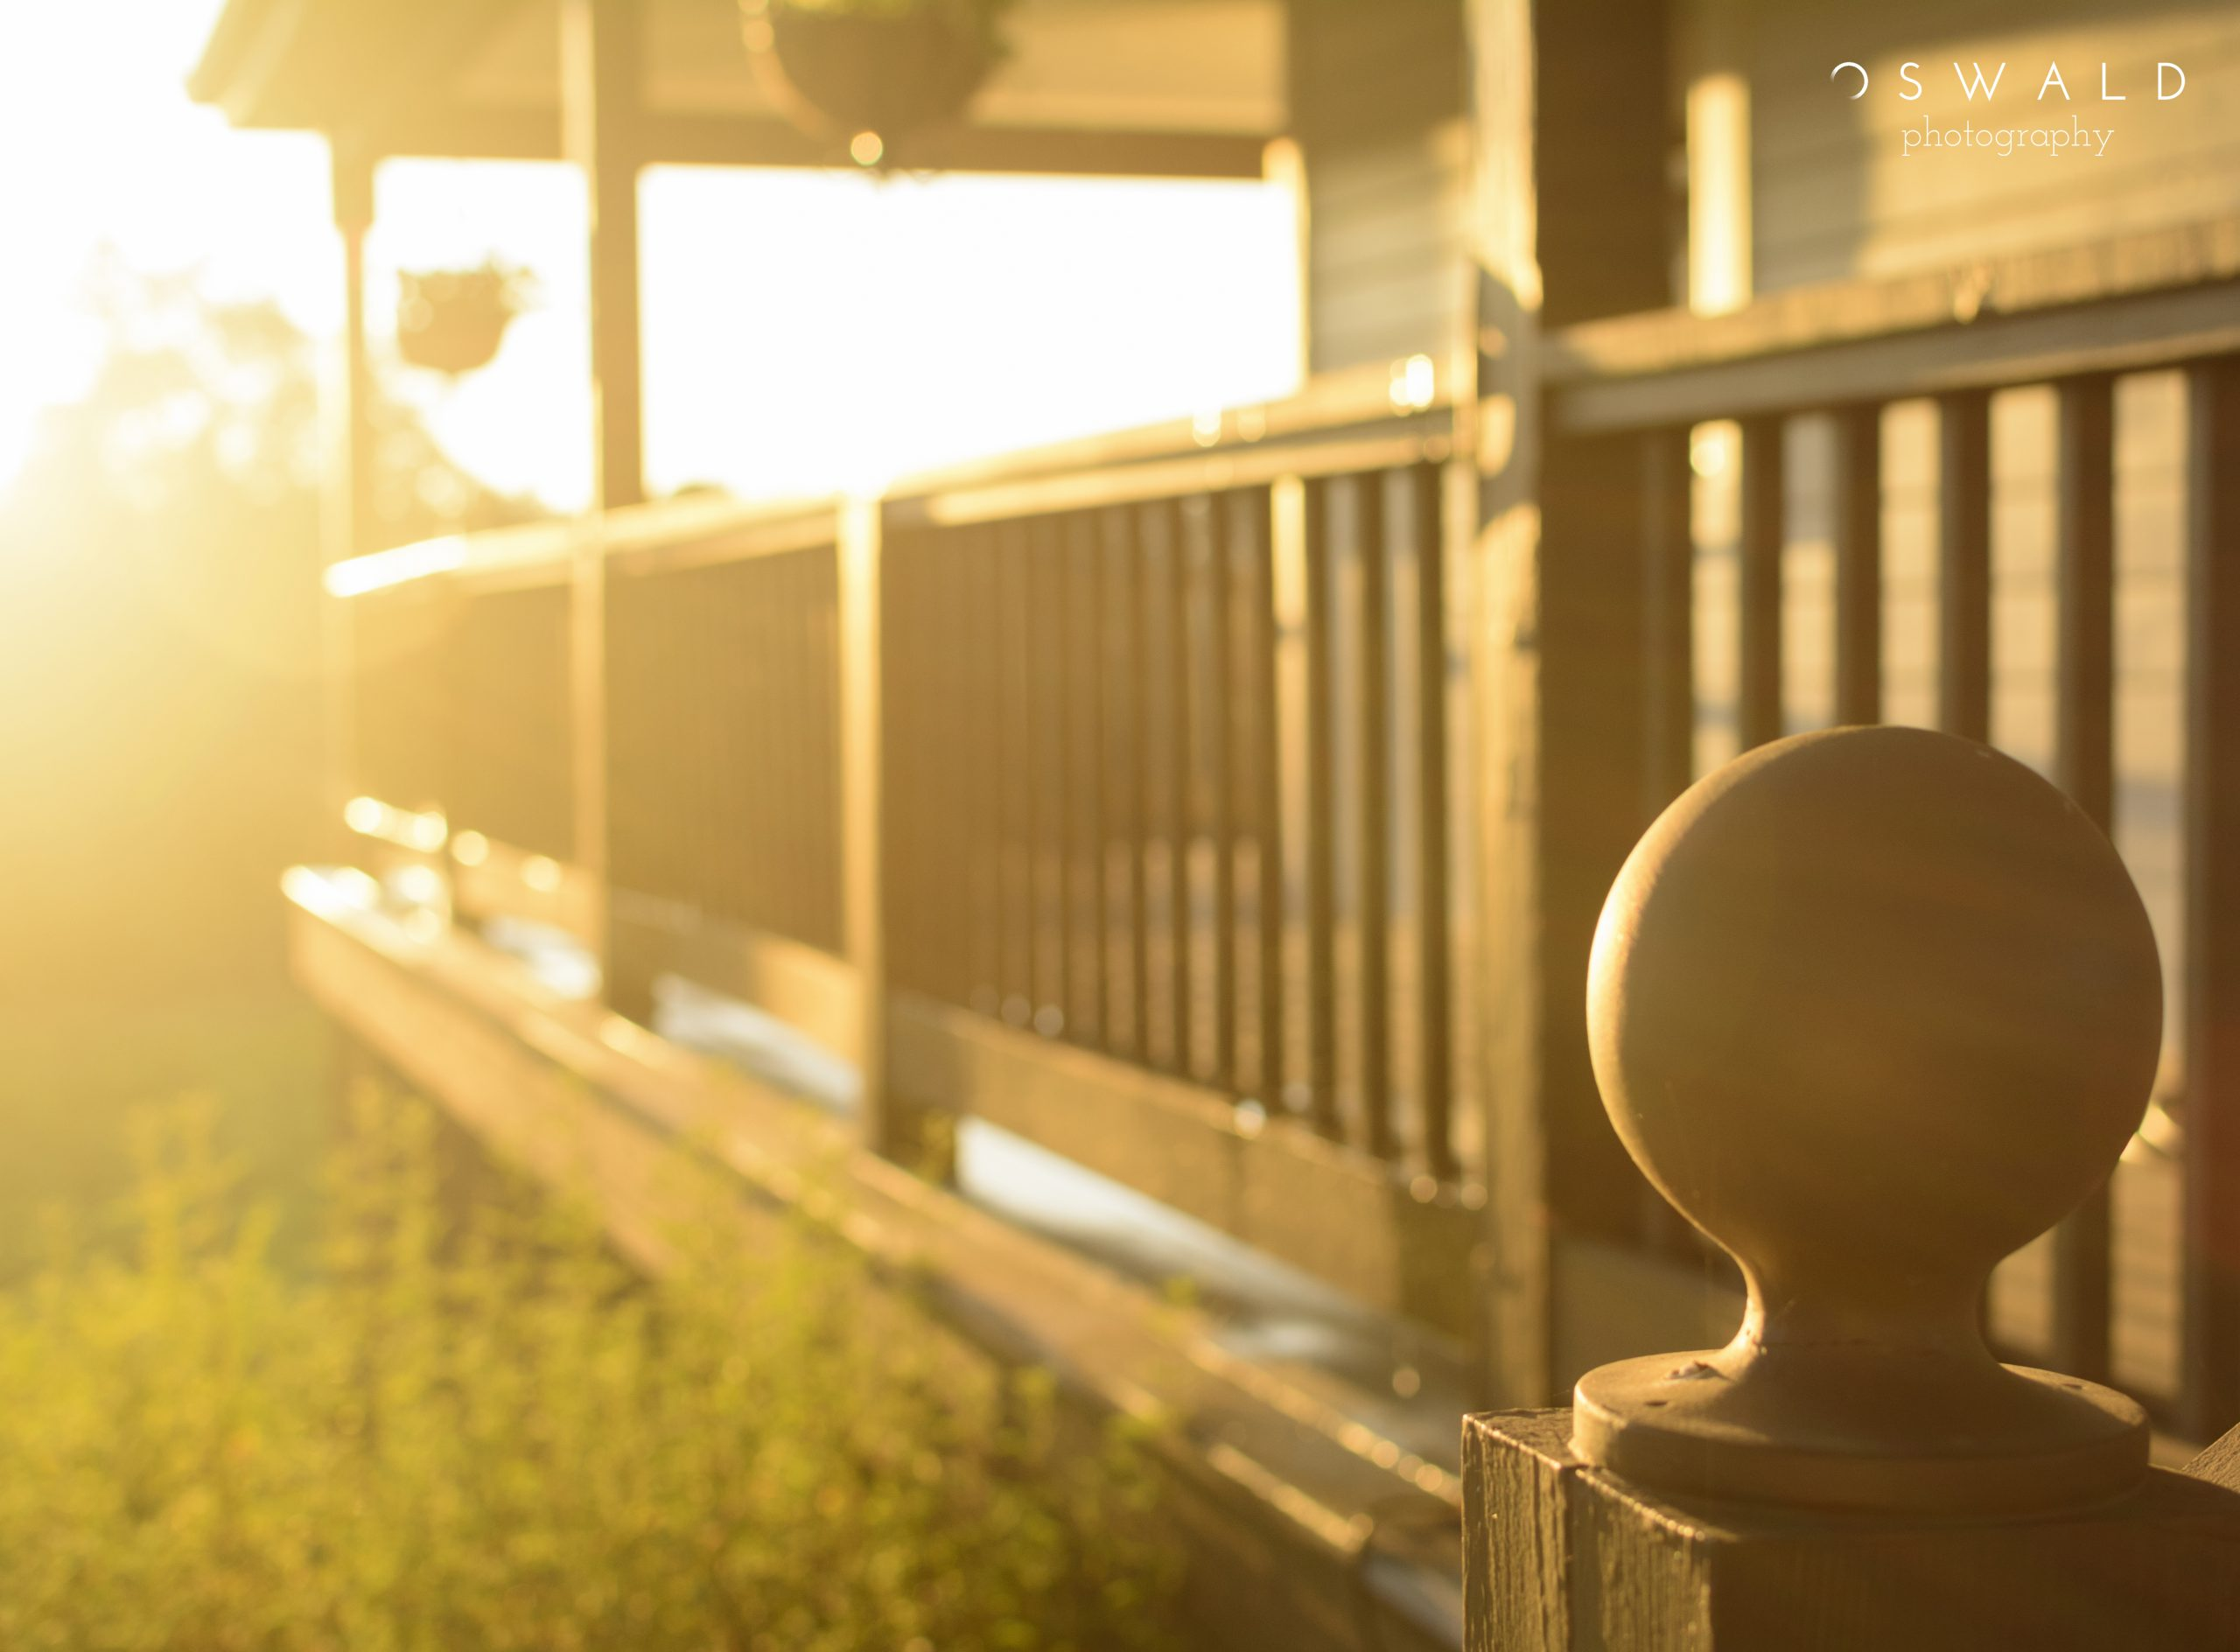 Photography of afternoon rays of sun against a wooden porch